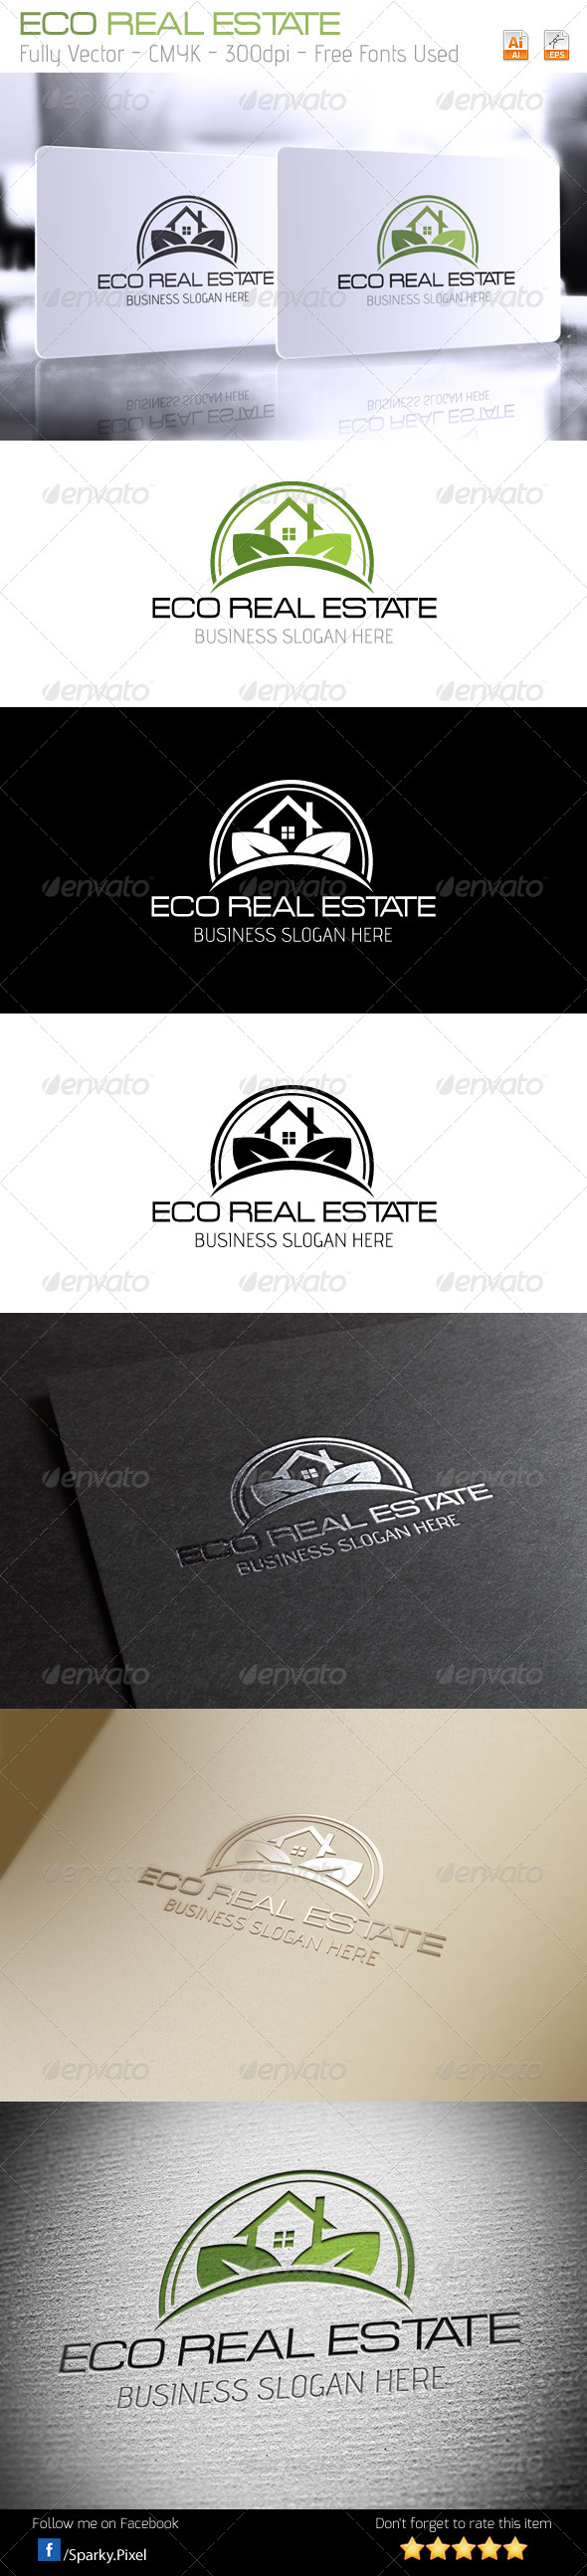 Eco Real Estate Logo